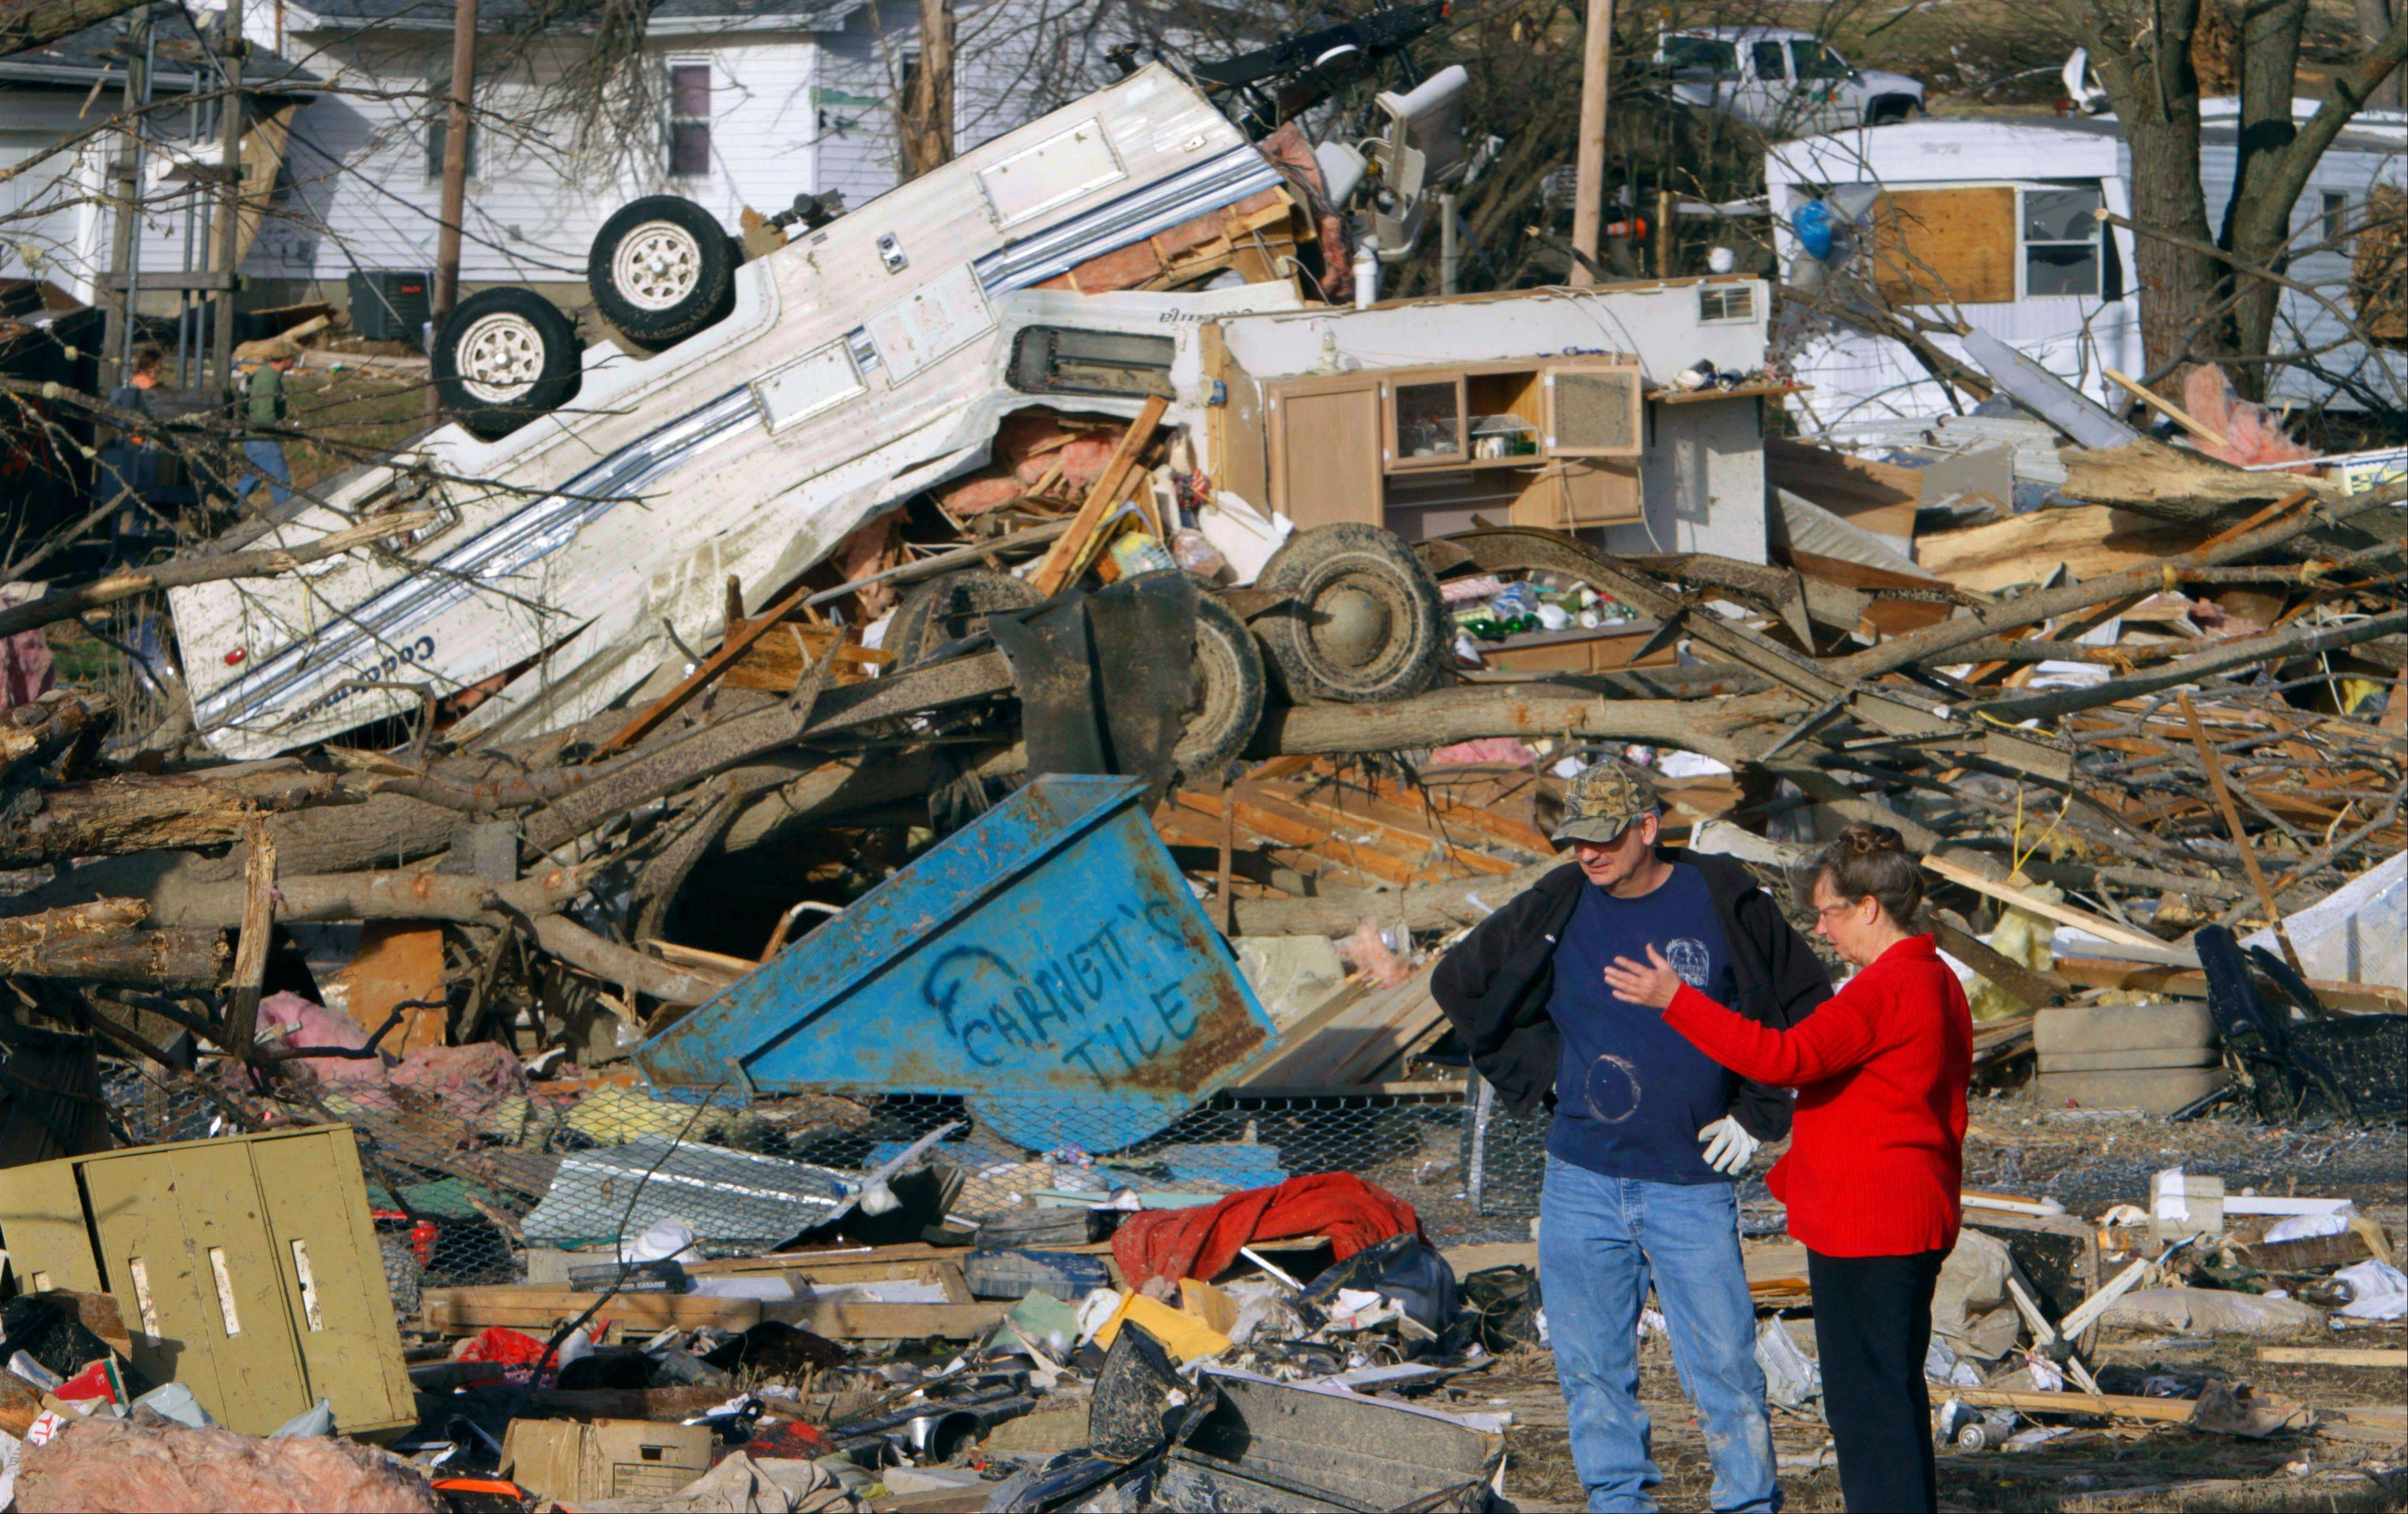 People try to salvage what they can after a tornado destroyed homes in downstate Harrisburg on Feb 29.